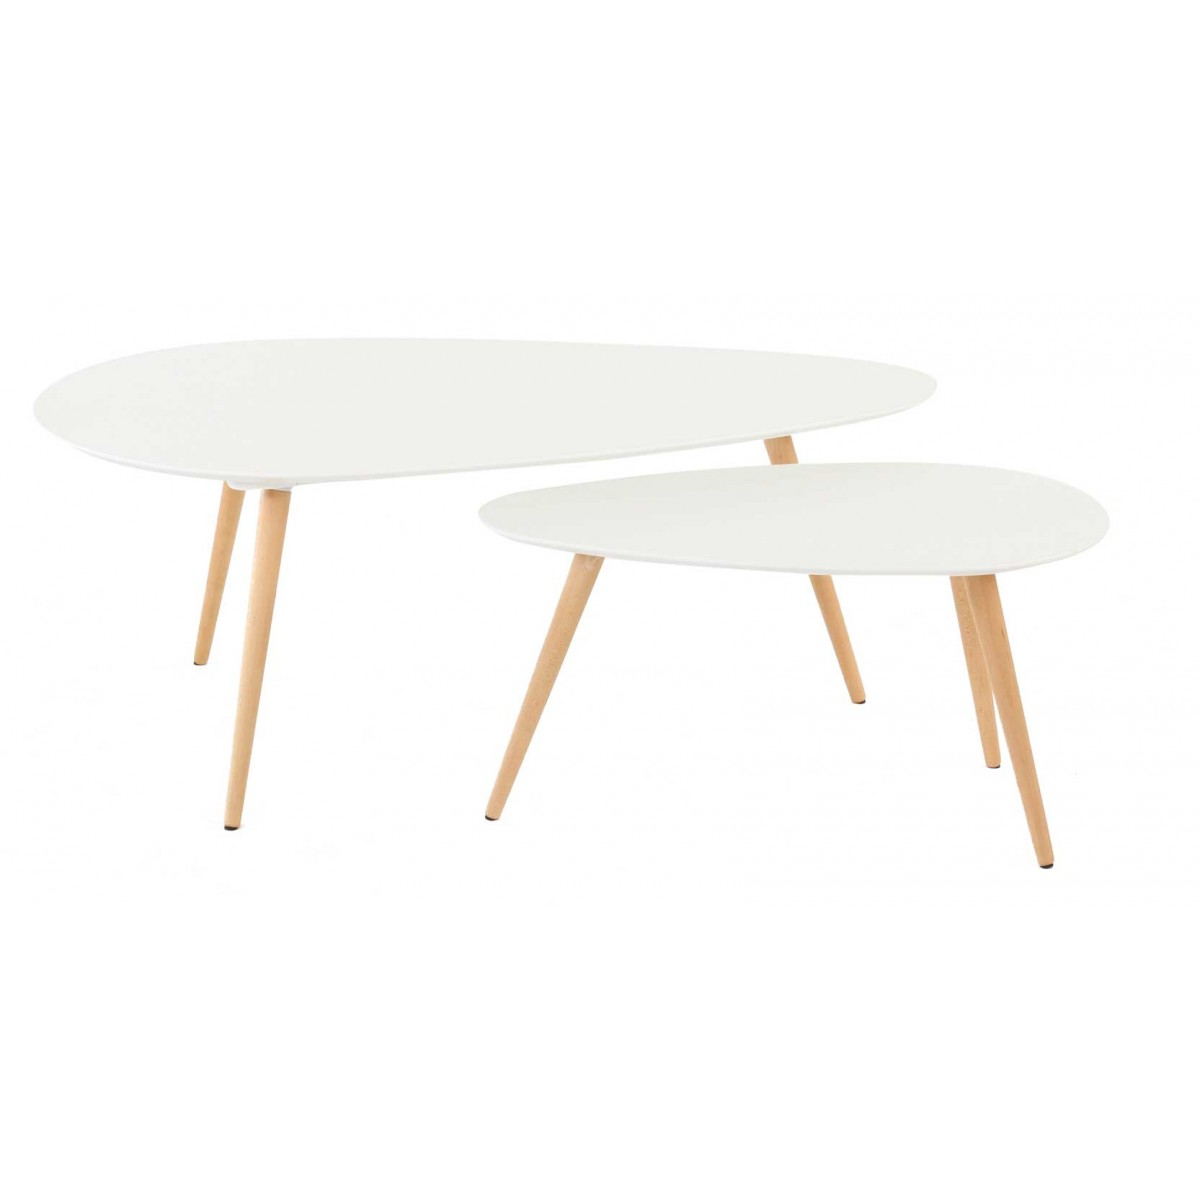 Tables basses gigognes ch ne et laqu blanc 116 cm scandie for Table basse scandinave blanc laque